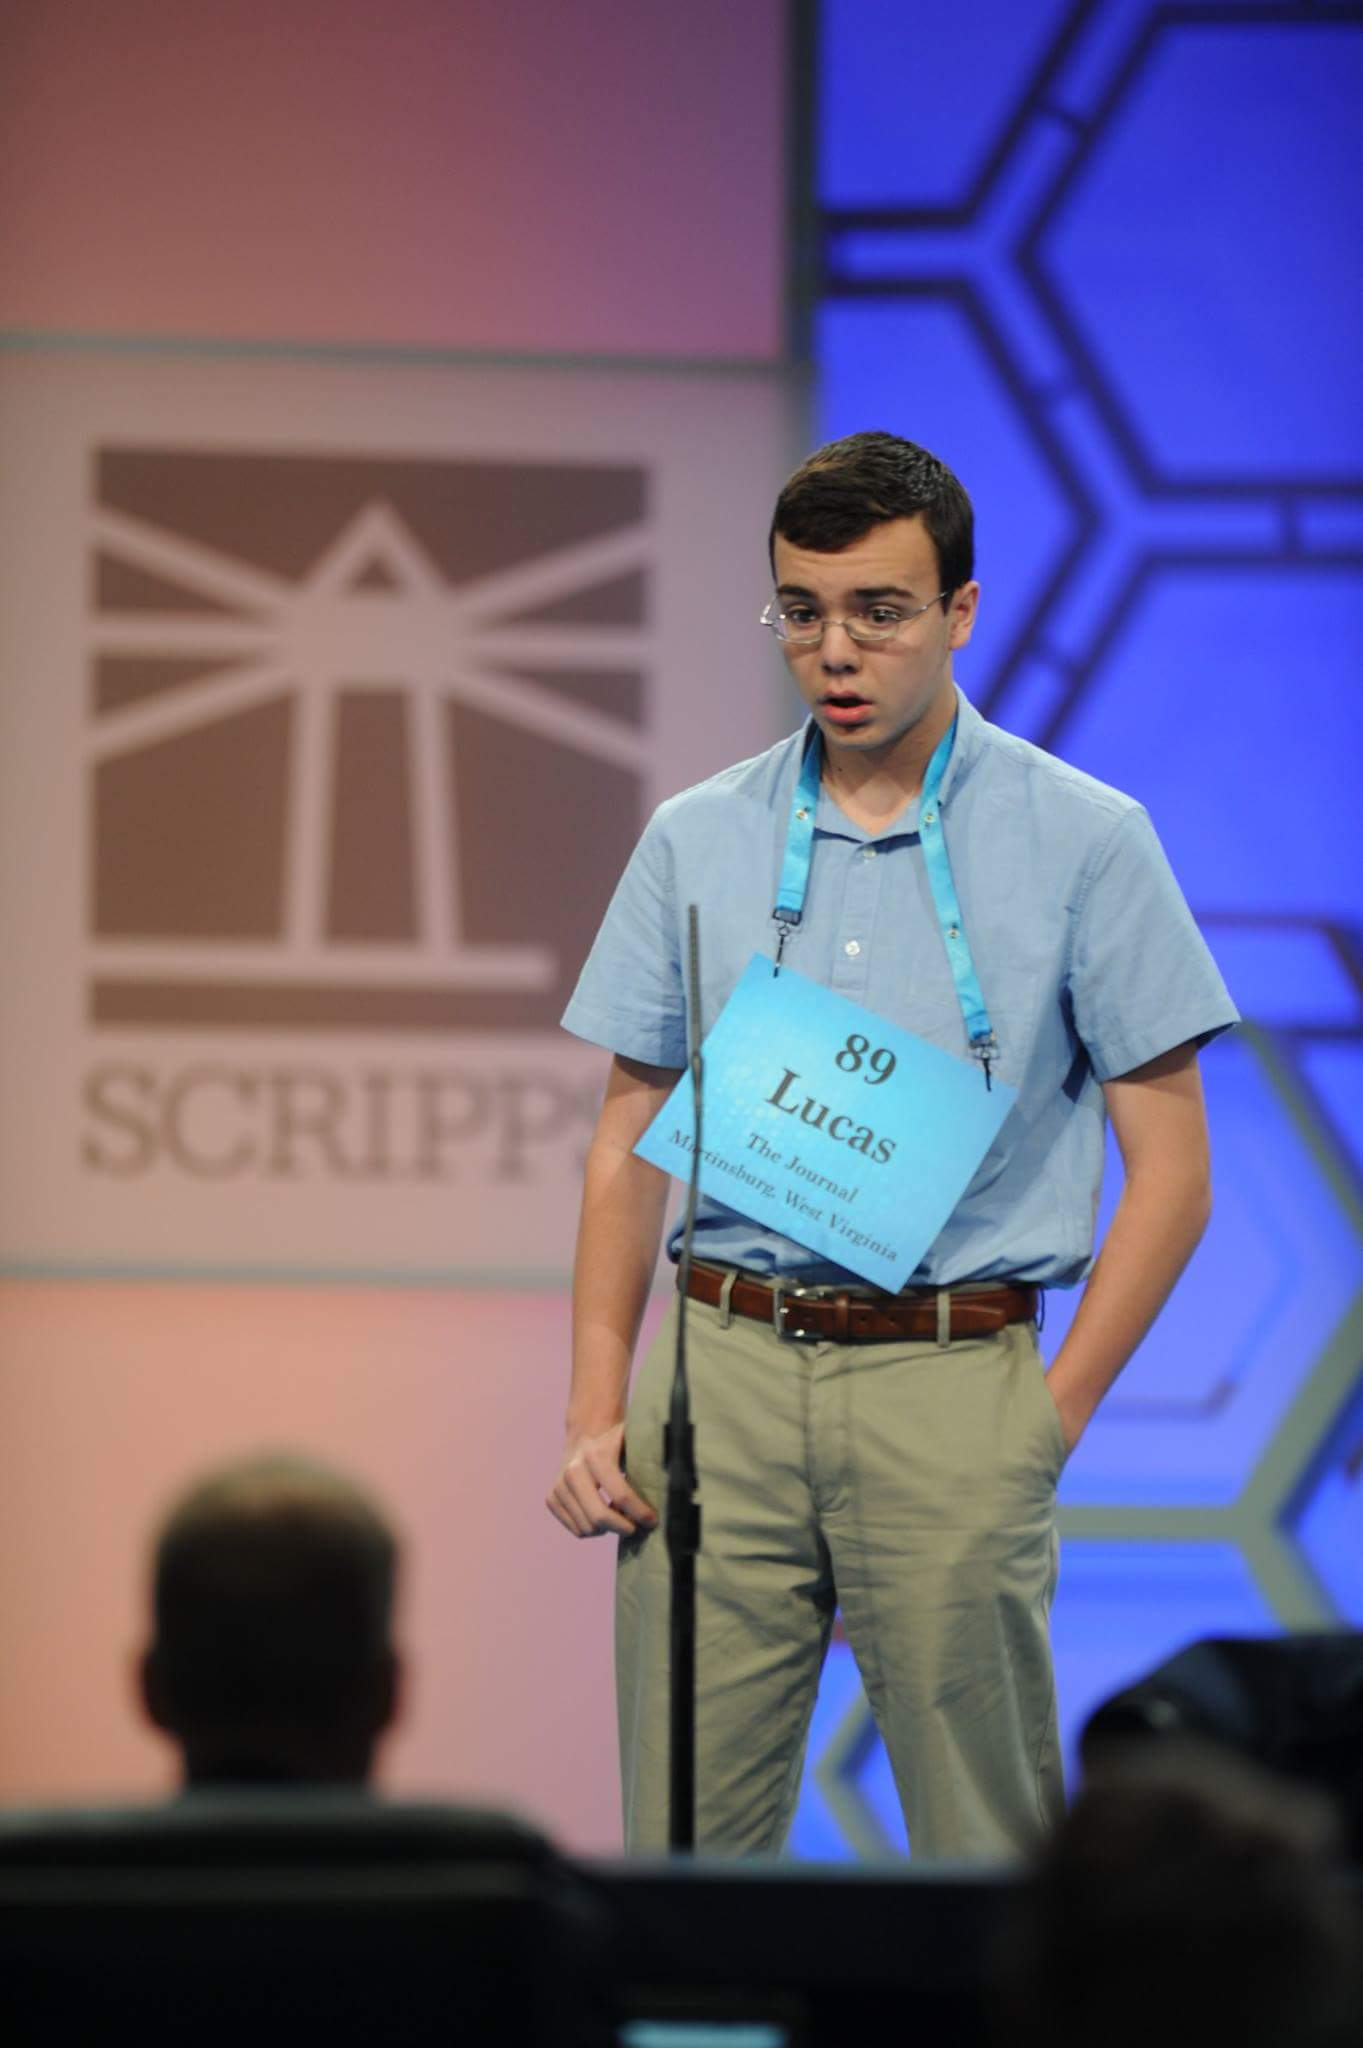 Local student participates in National Spelling Bee | News ...